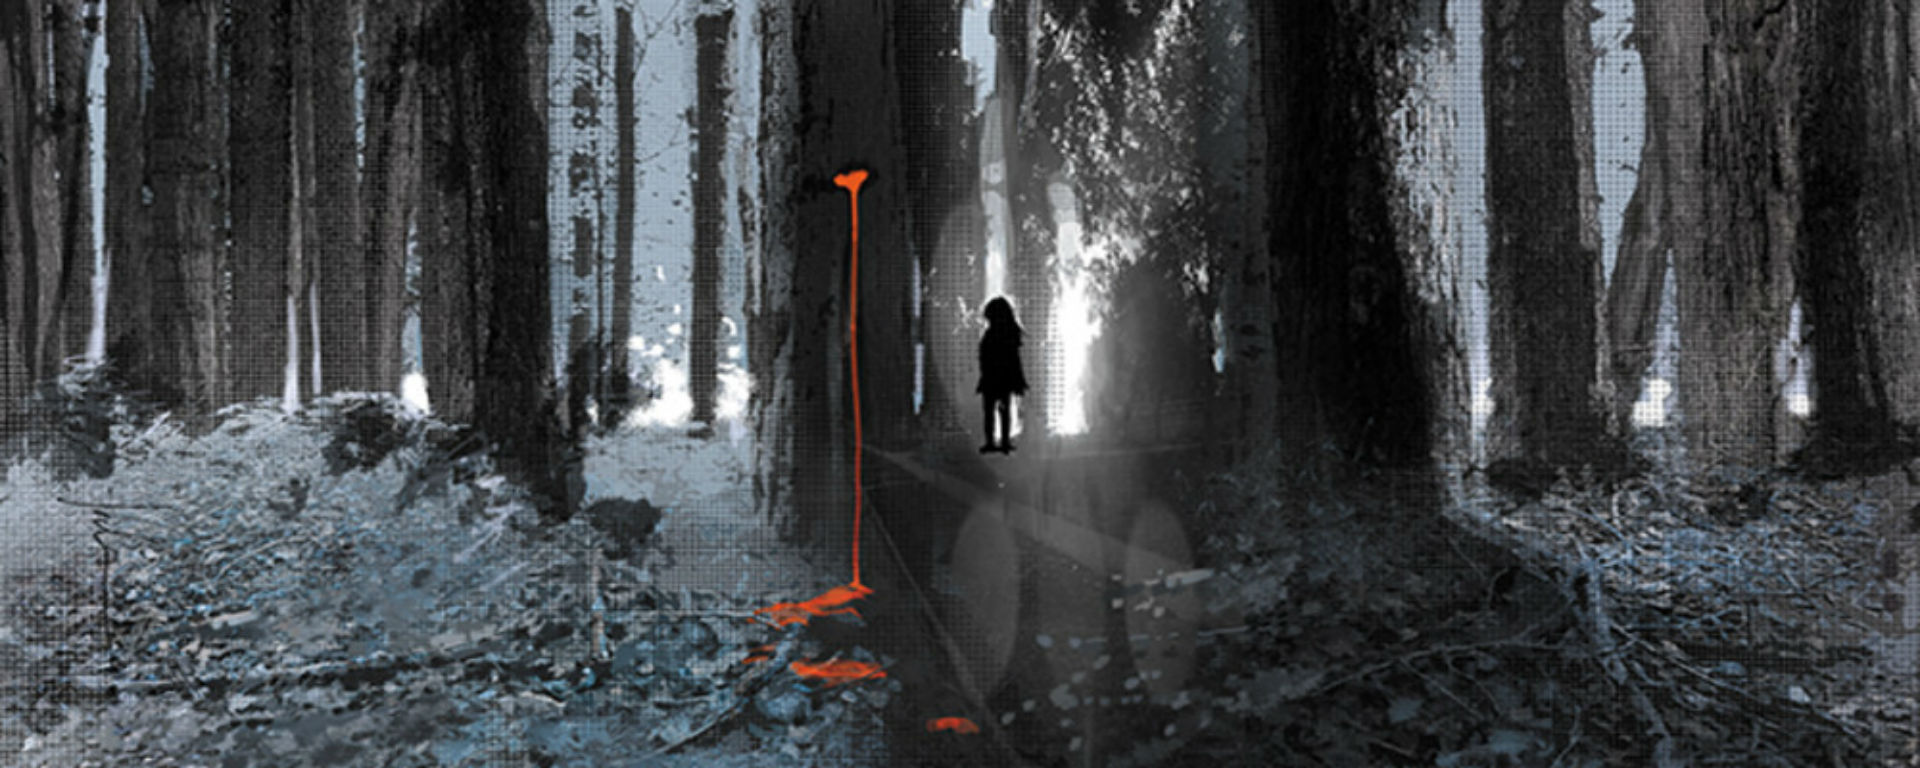 image comics wytches 1 review feature image